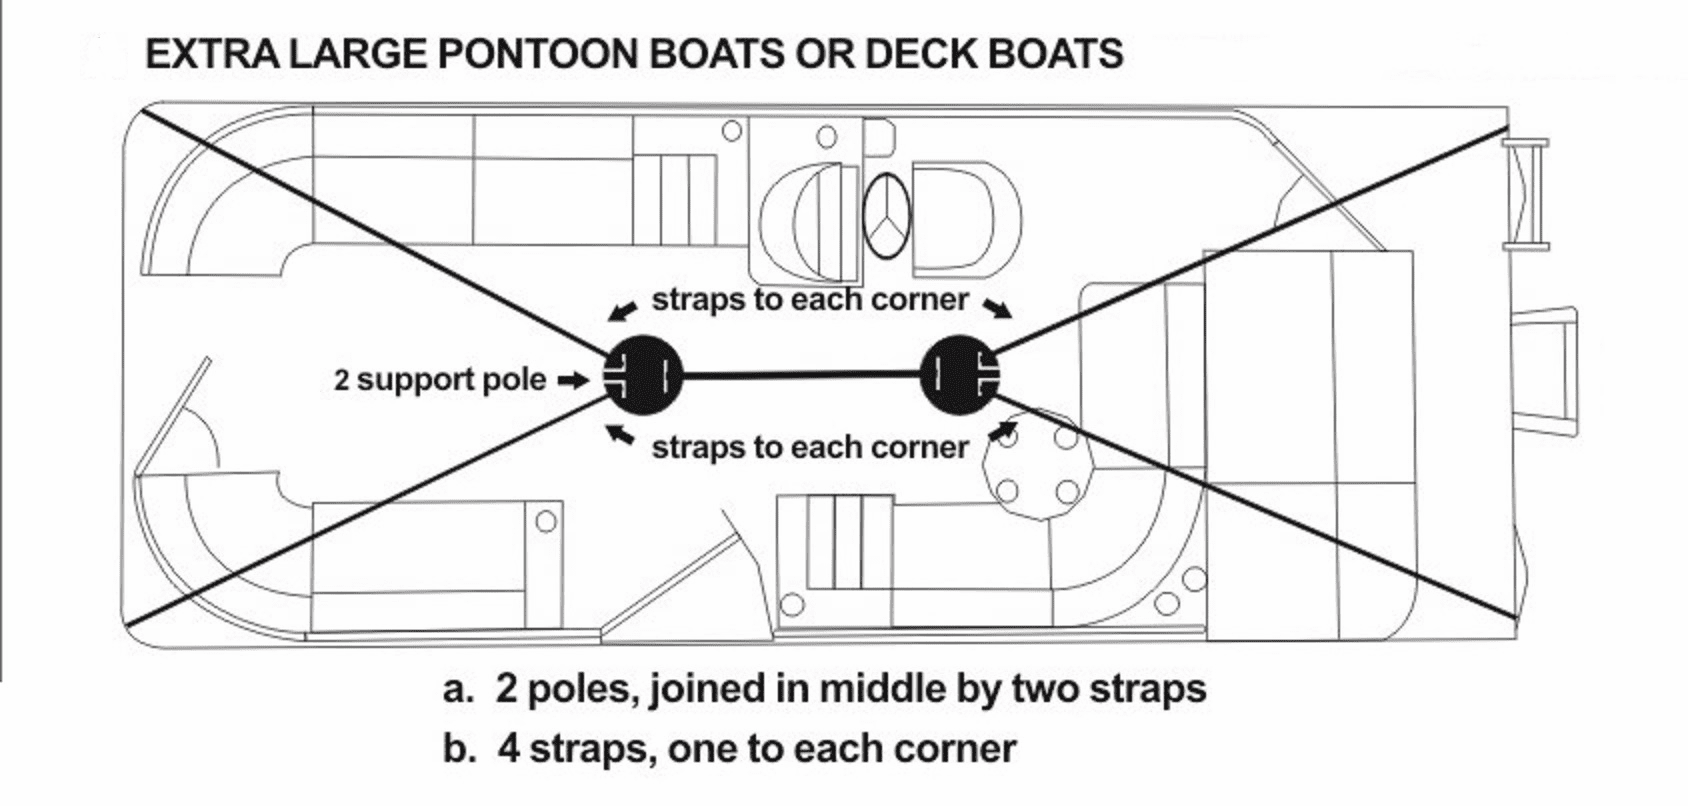 VORTEX DOUBLE PONTOON / DECK BOAT SUPPORT POLE SYSTEM<BR>